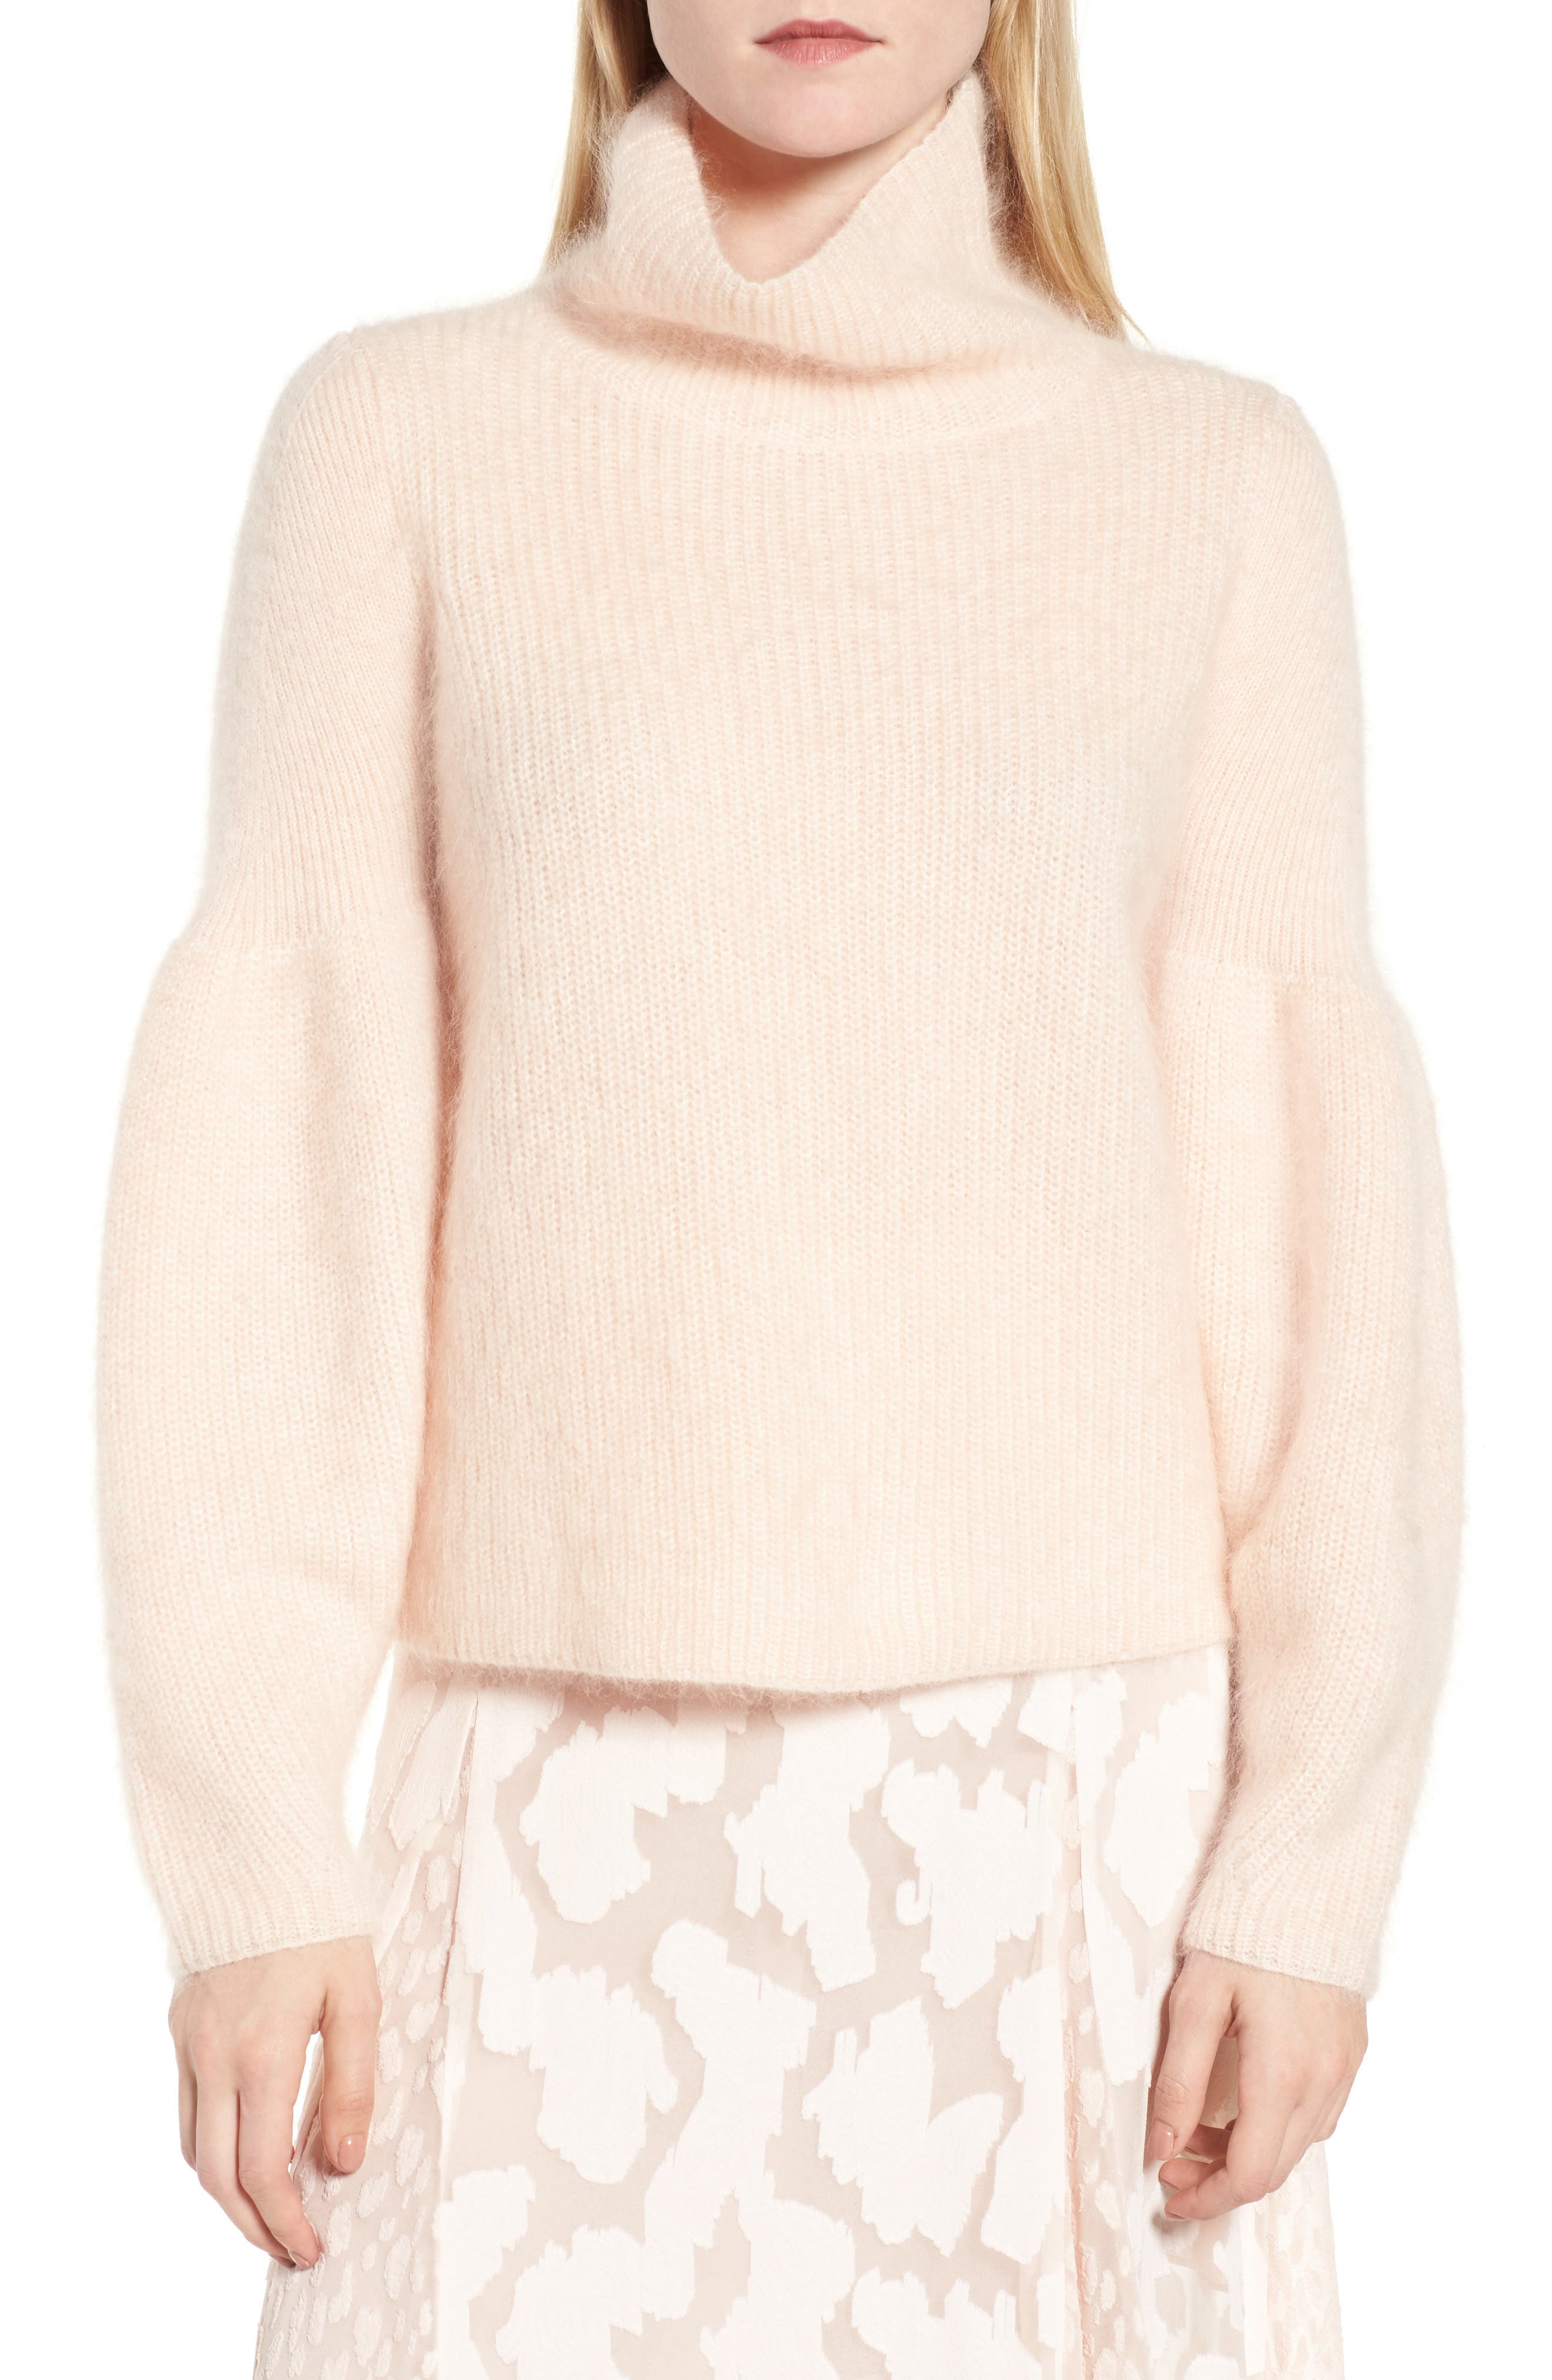 Poet Sleeve Sweater,                         Main,                         color, 680